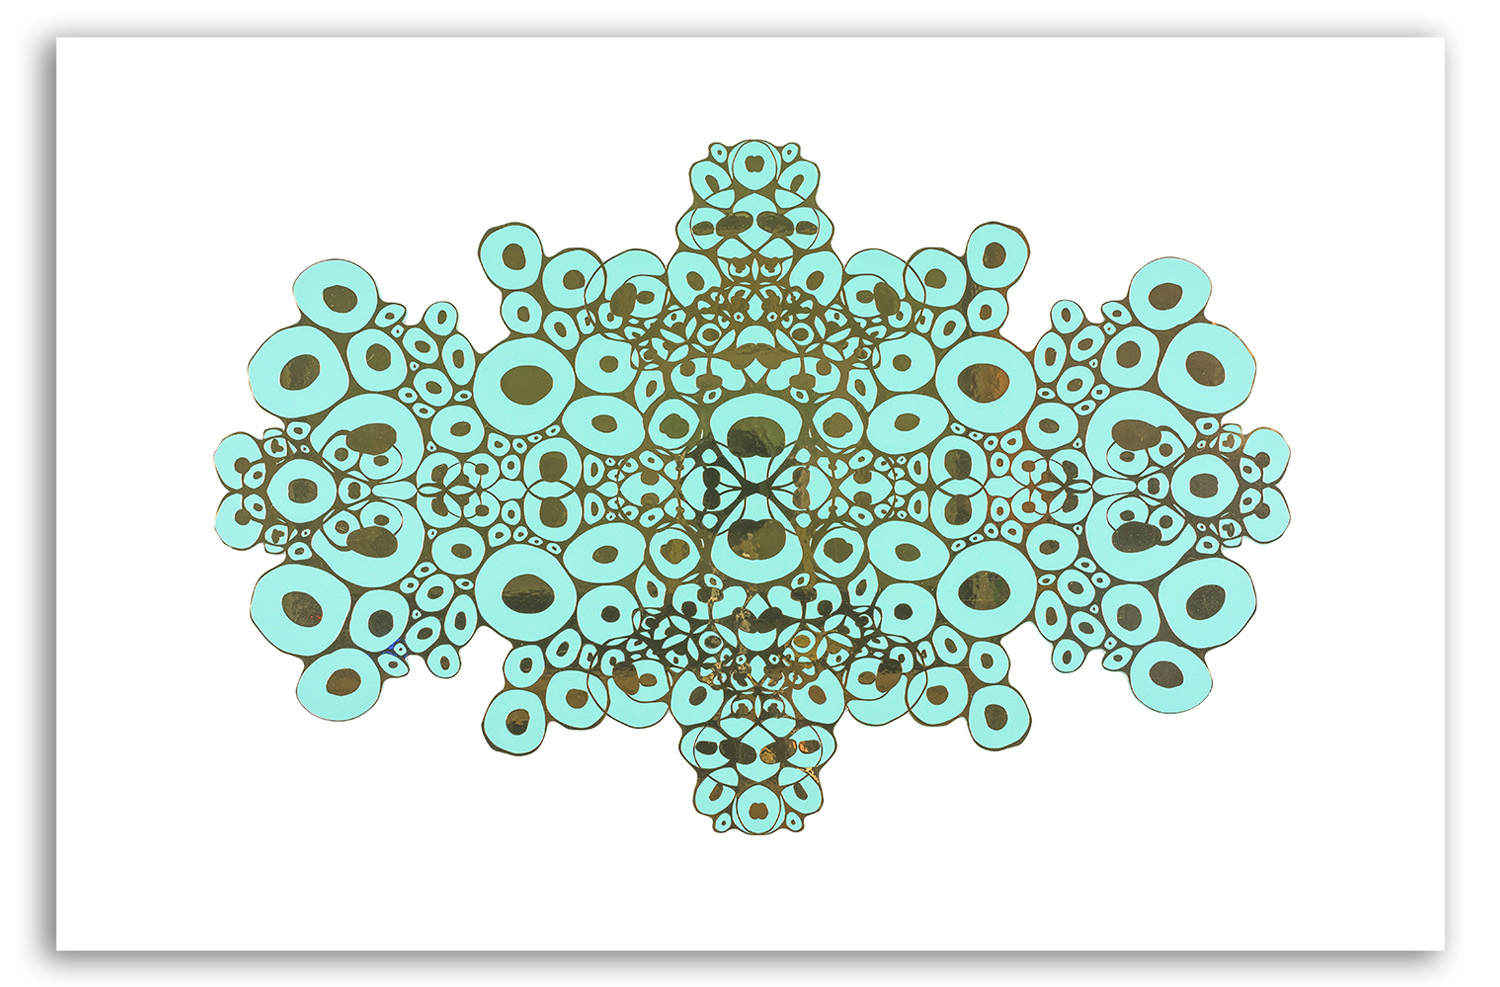 2016_08_Teal & Gold (Elongated with Circles)_27.5x18.5 (web 1500)